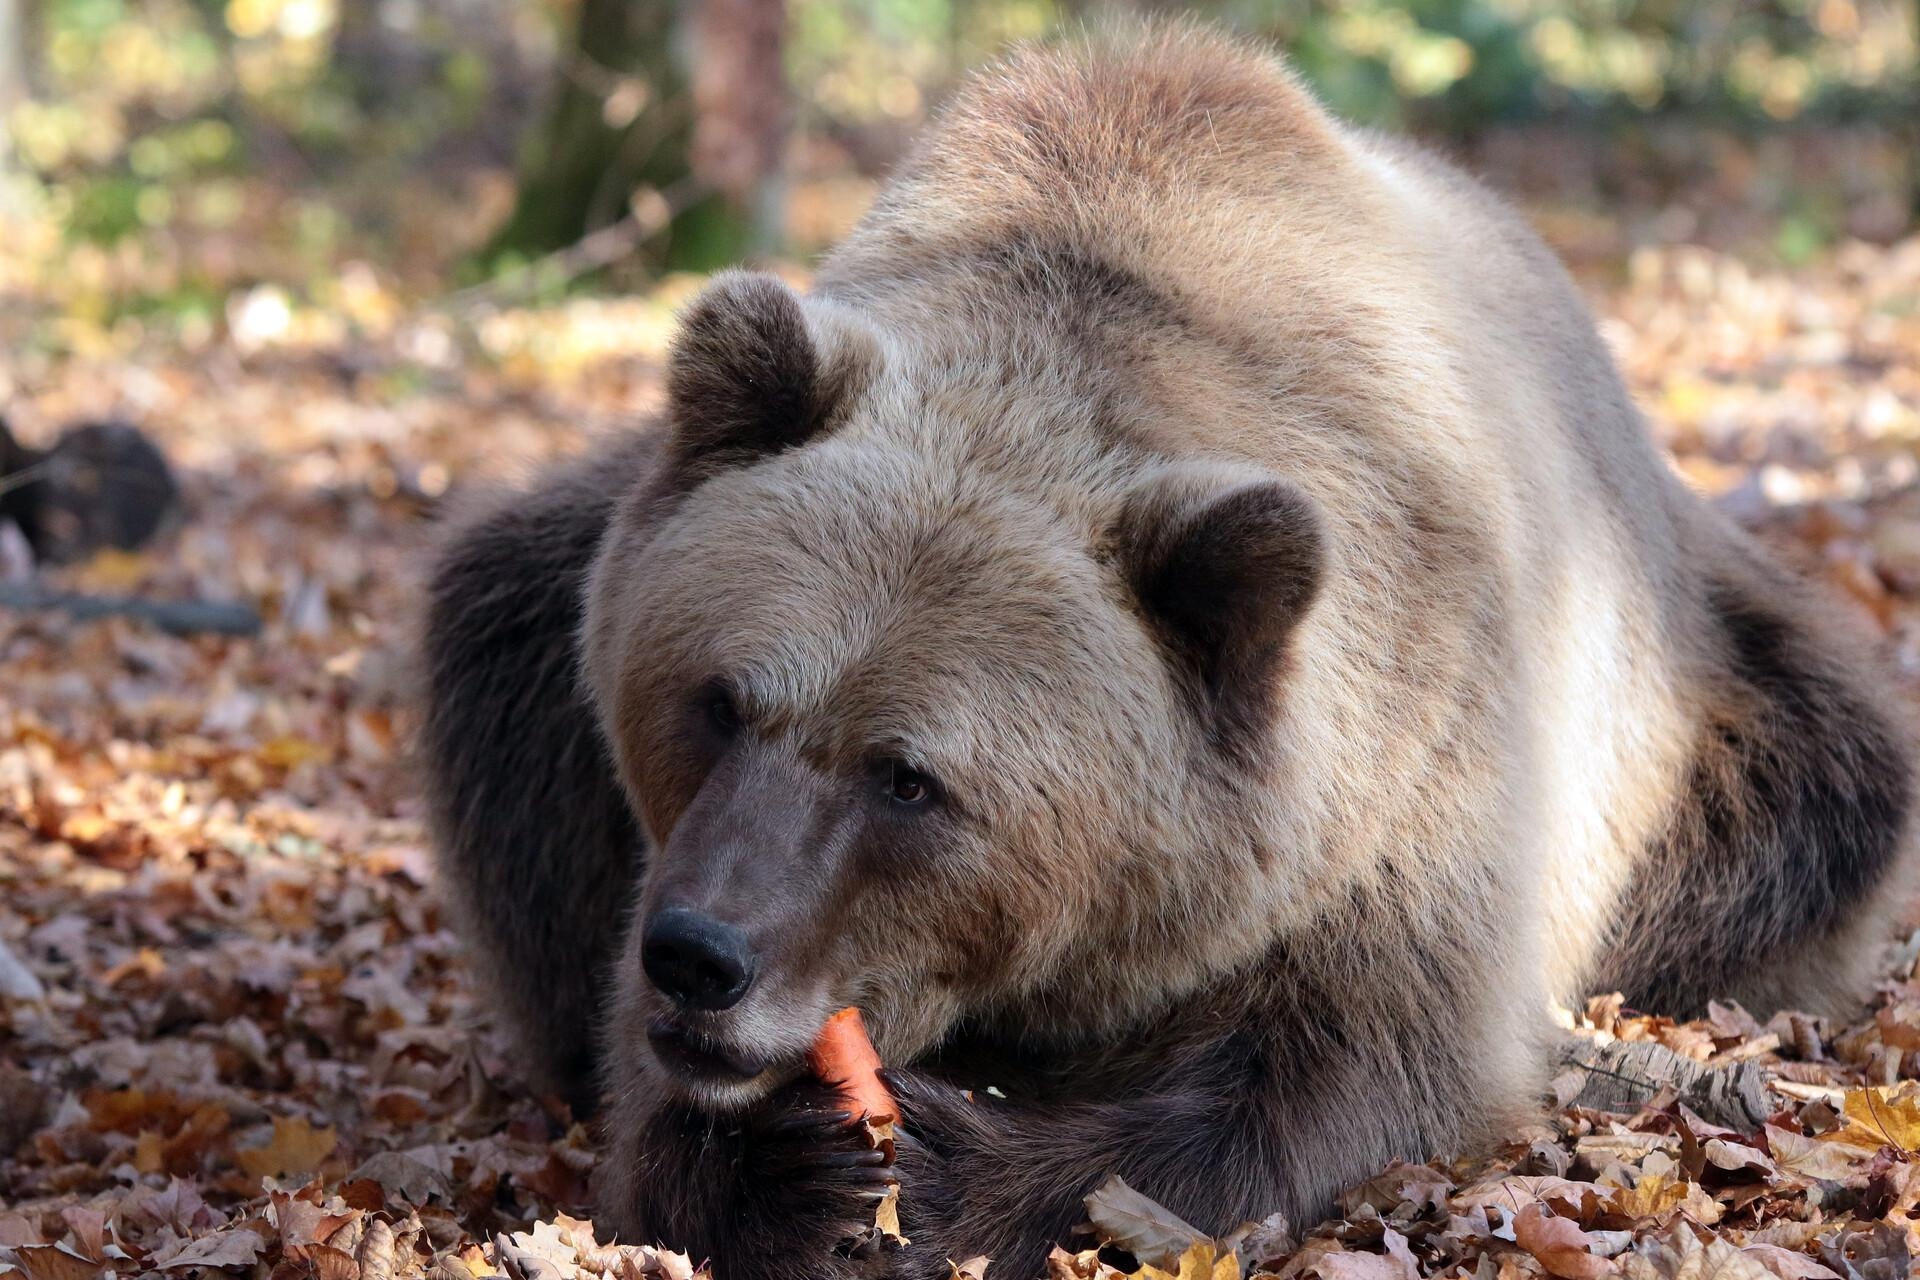 Bear Bodia at BEAR SANCTUARY Domazhyr